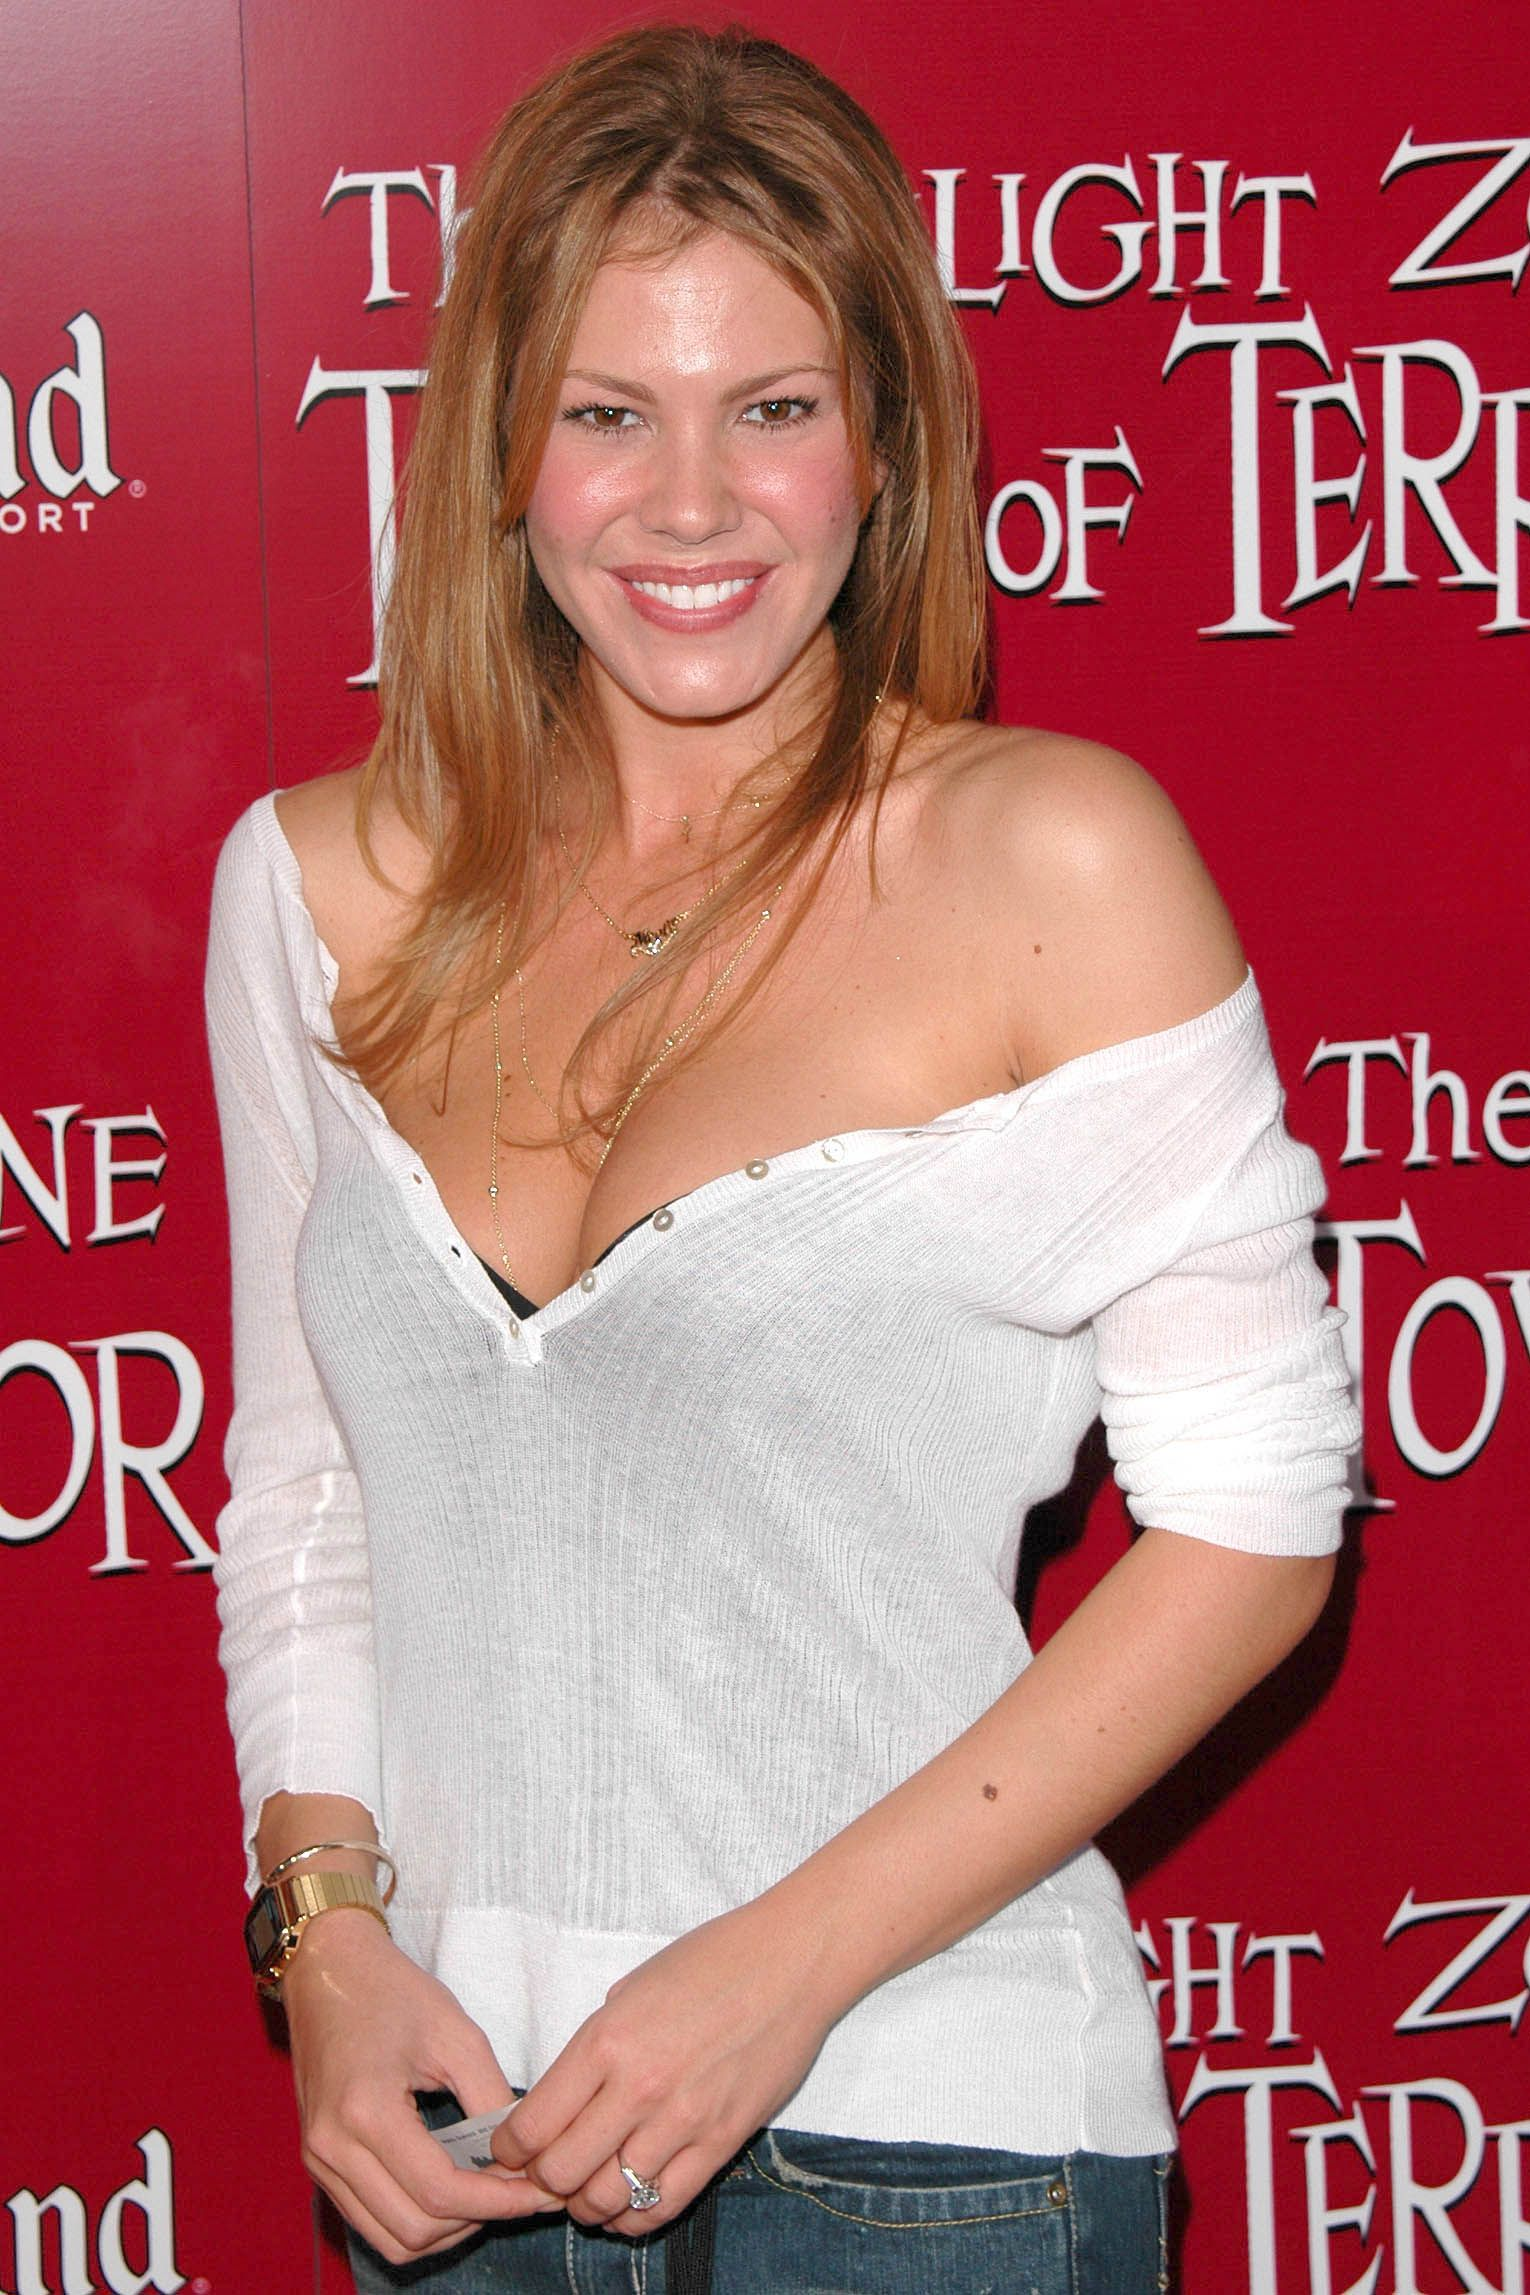 Cleavage Nikki Cox nude (67 foto and video), Ass, Sideboobs, Twitter, lingerie 2017